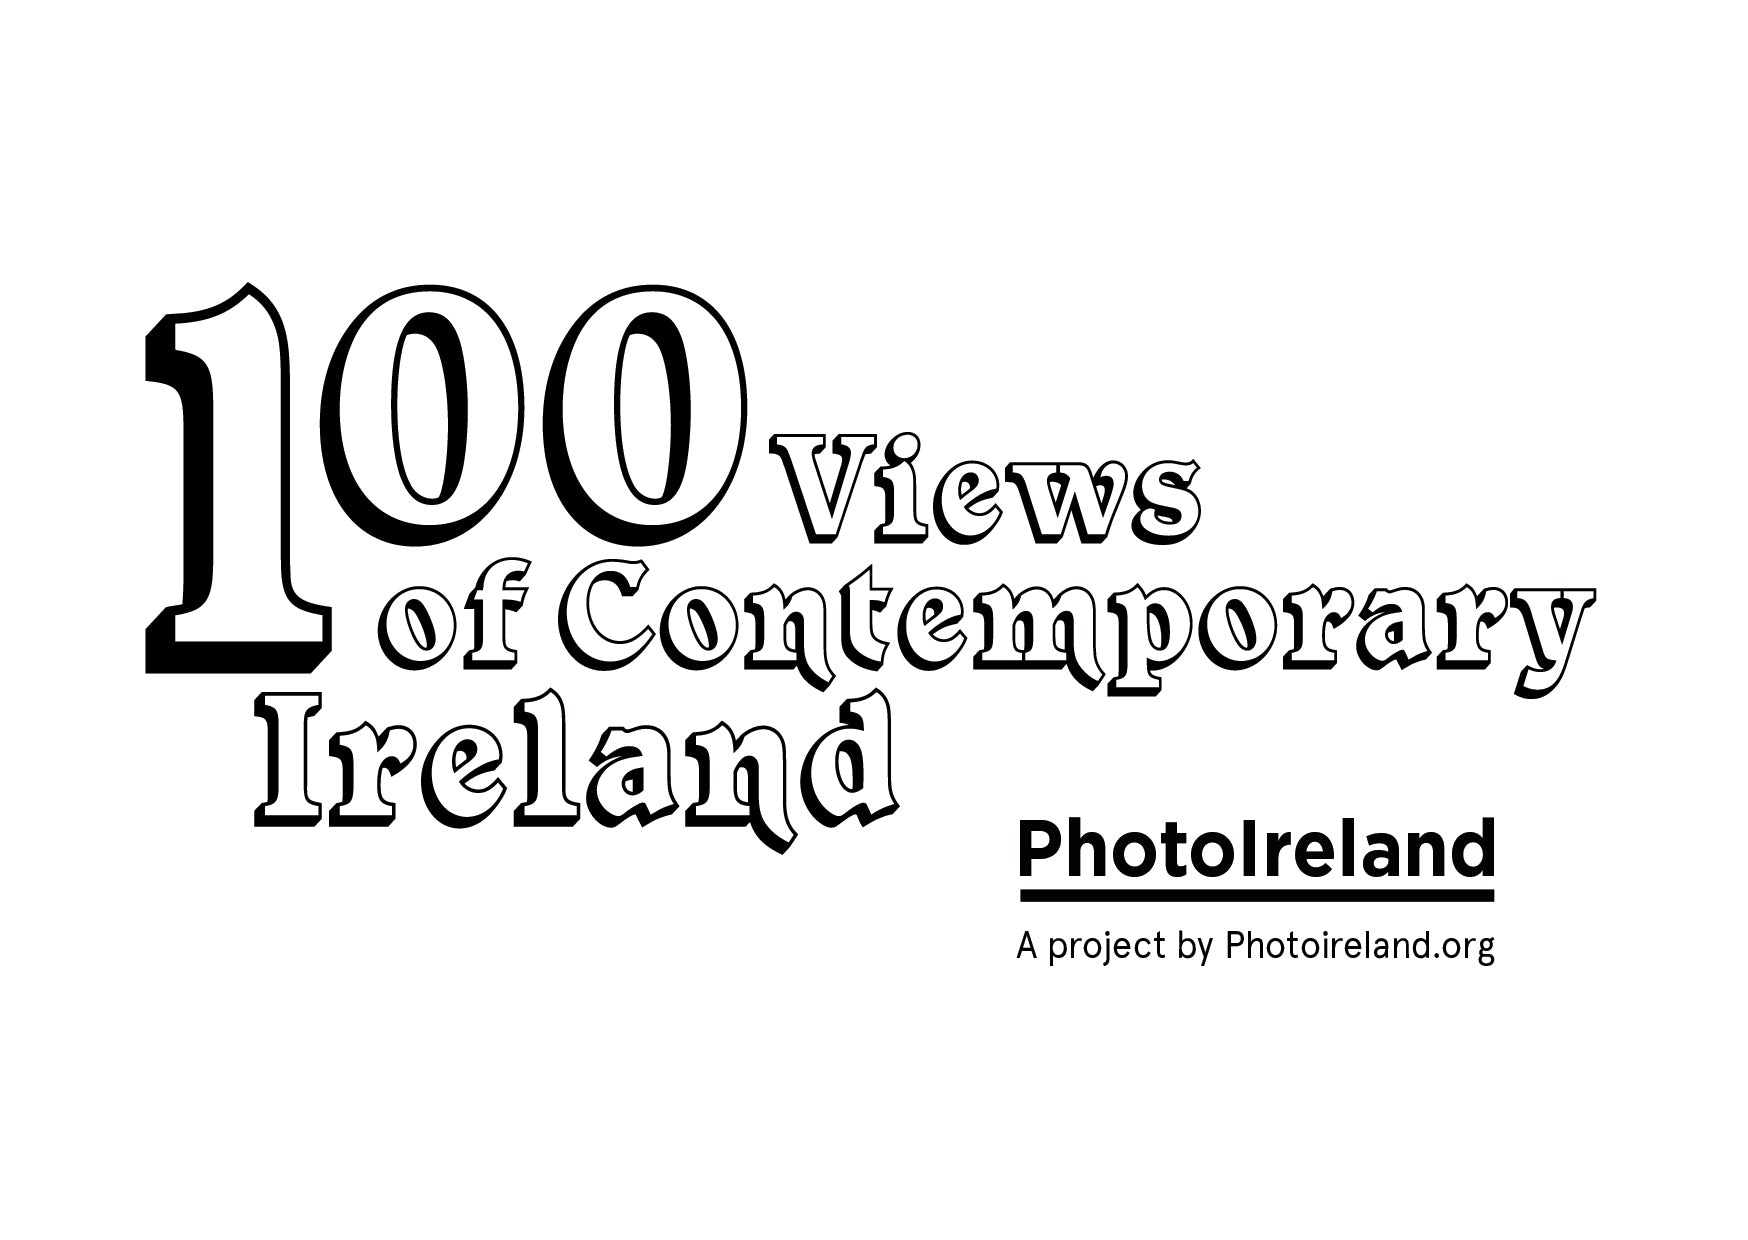 Megan Doherty, 100 Views of Contemporary Ireland